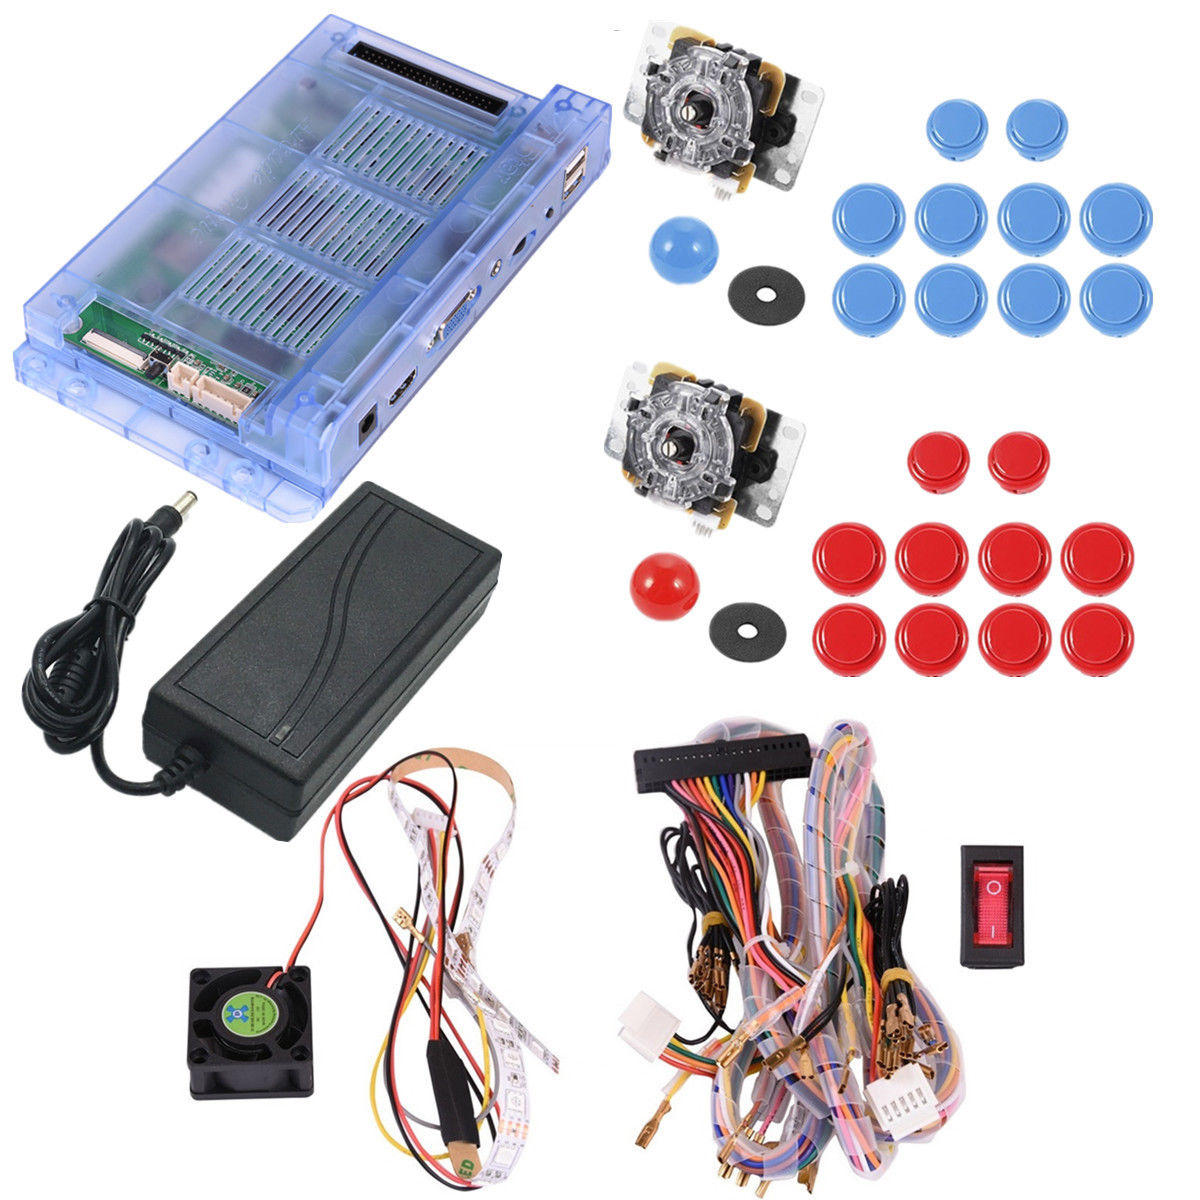 1299 In 1 Double Joystick Dual Player Push Button Game Board For Jamma Wiring Diagram Pandorabox 5s Console